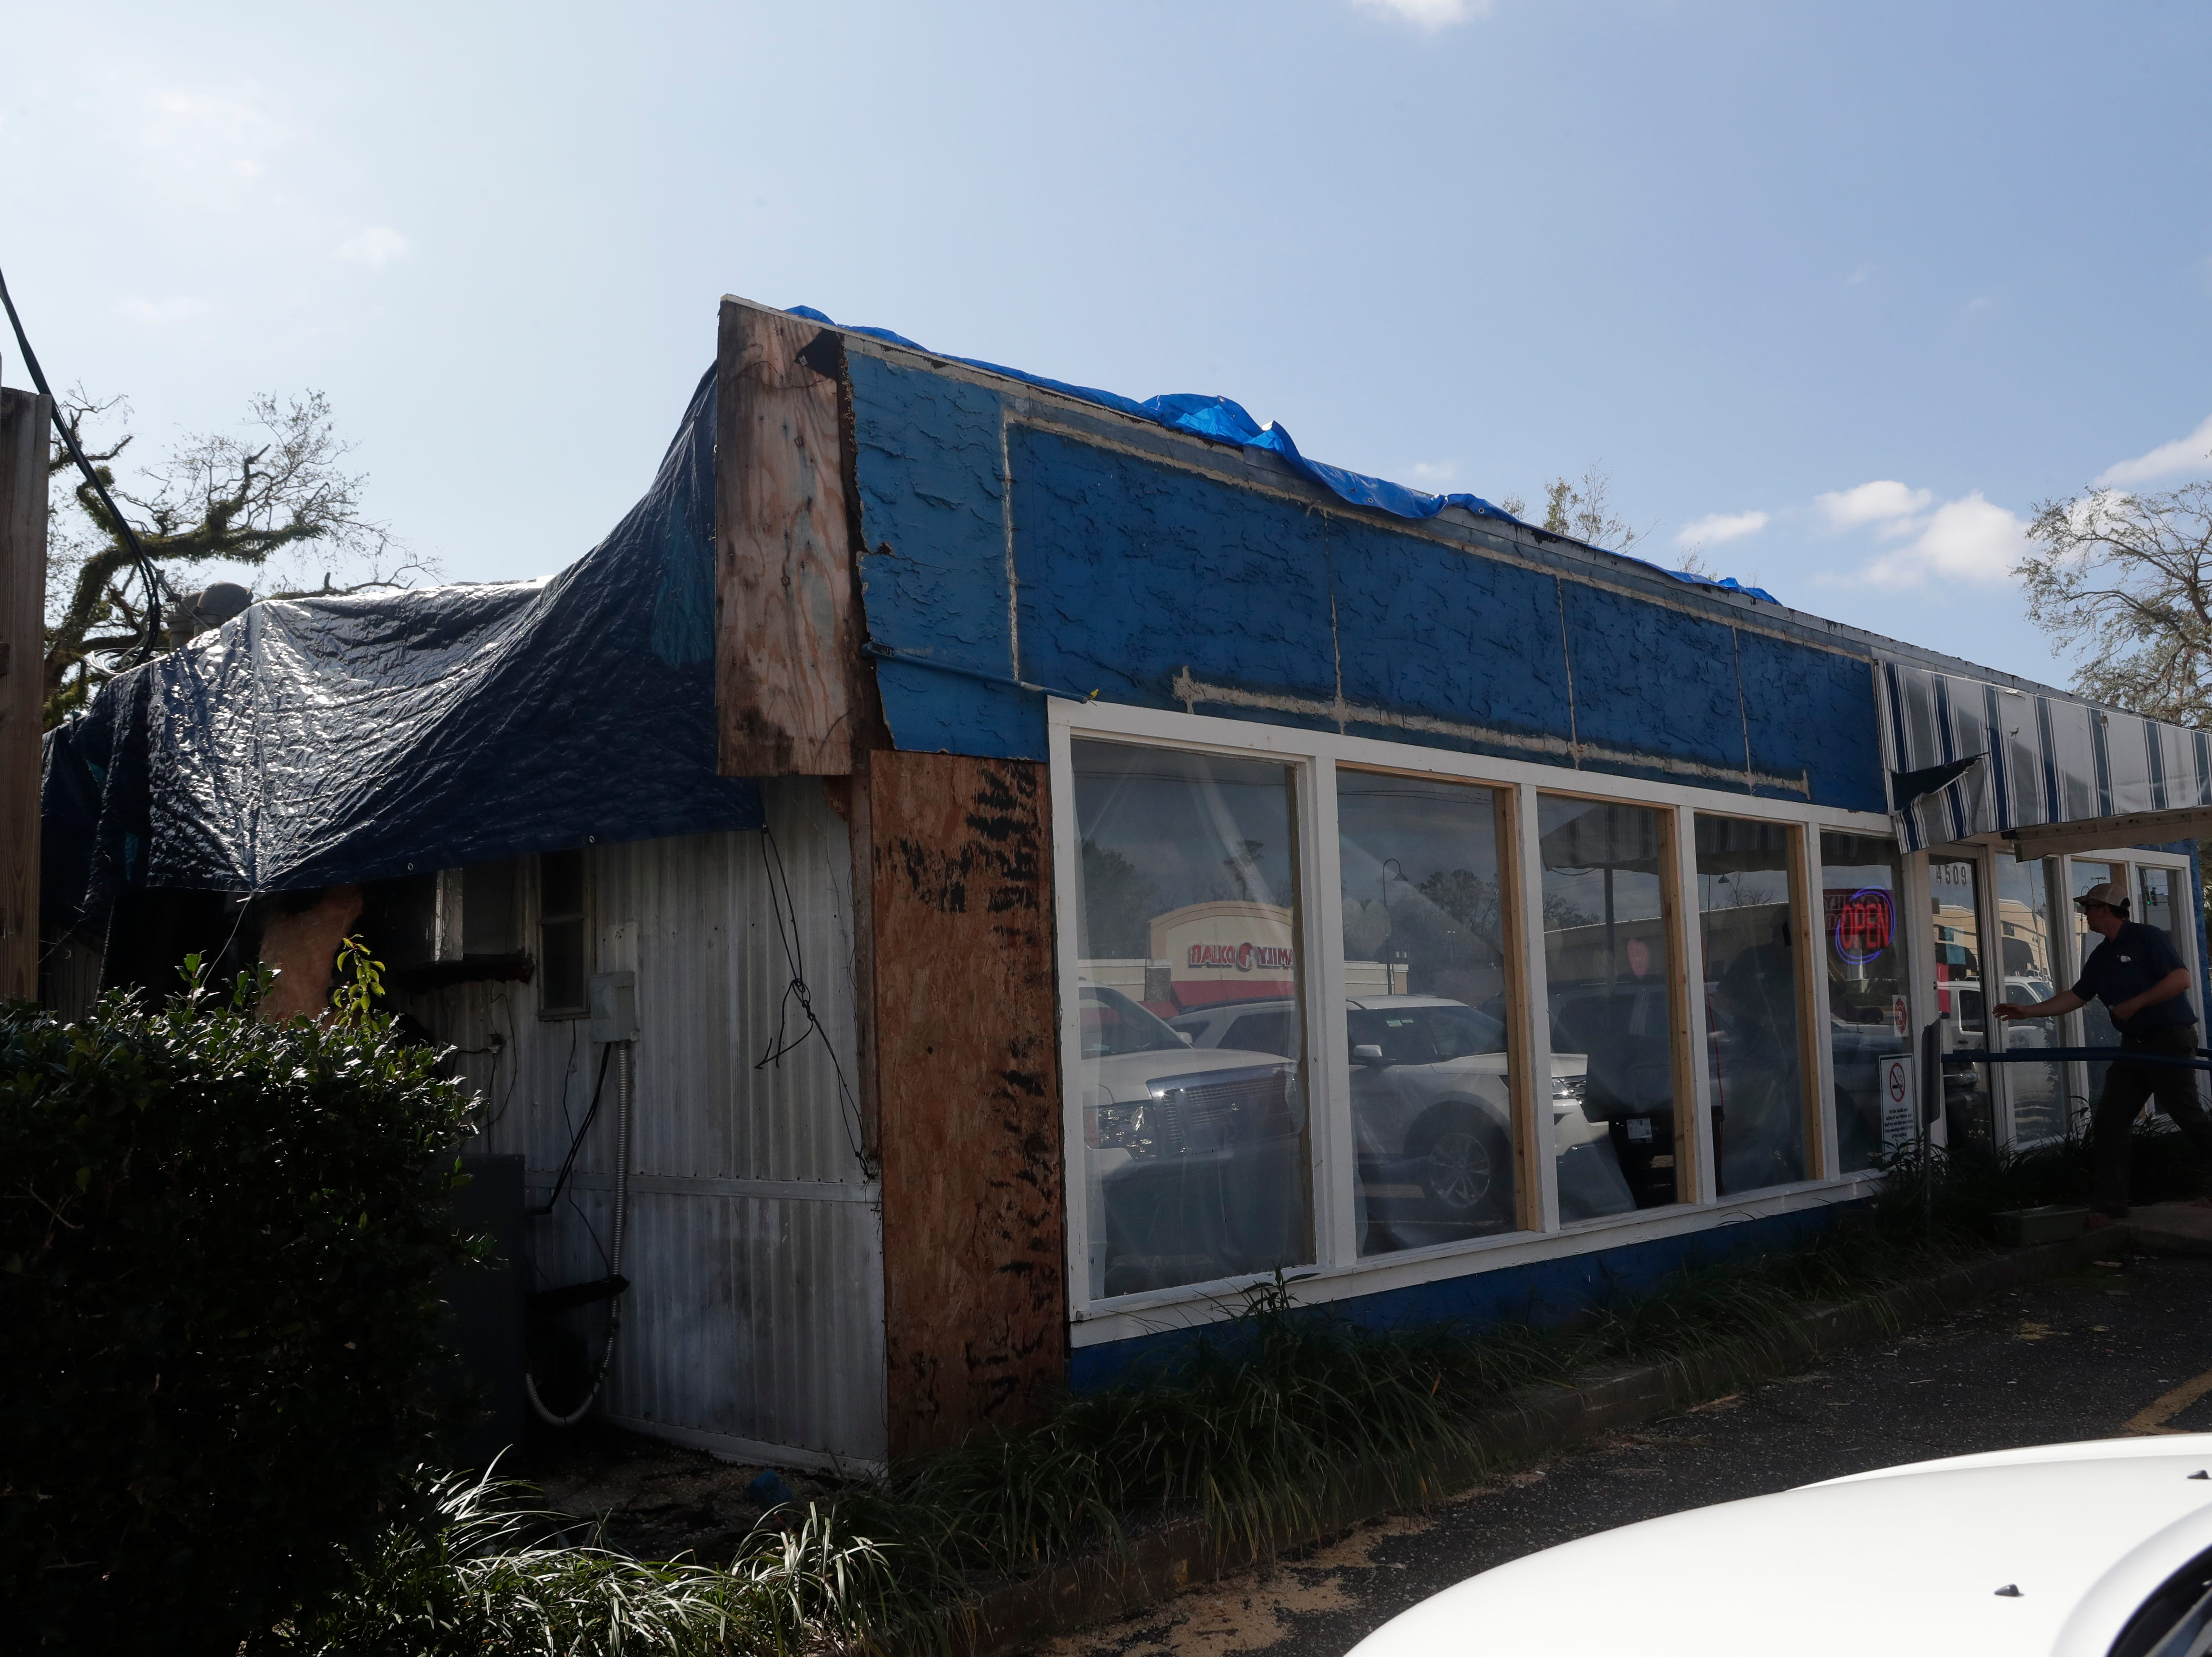 The Waffle Iron in Marianna, Fla. is open for business, Tuesday, Feb. 5, 2019. The restaurant was badly damaged by Hurricane Michael in Oct. 2018 and is still in need of a new roof.